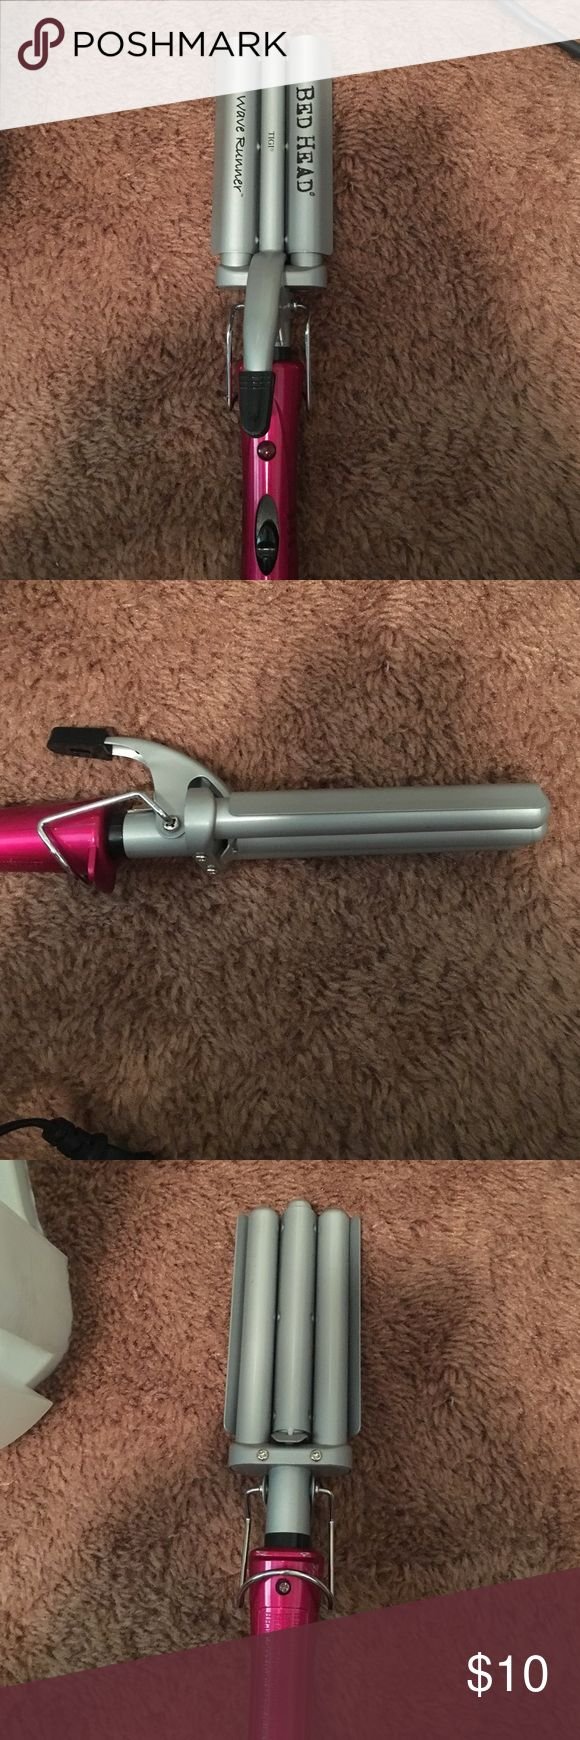 Bed head waver Never use this, I prefer my deep waver over this. Still in great condition! Make an offer! BedHead Other